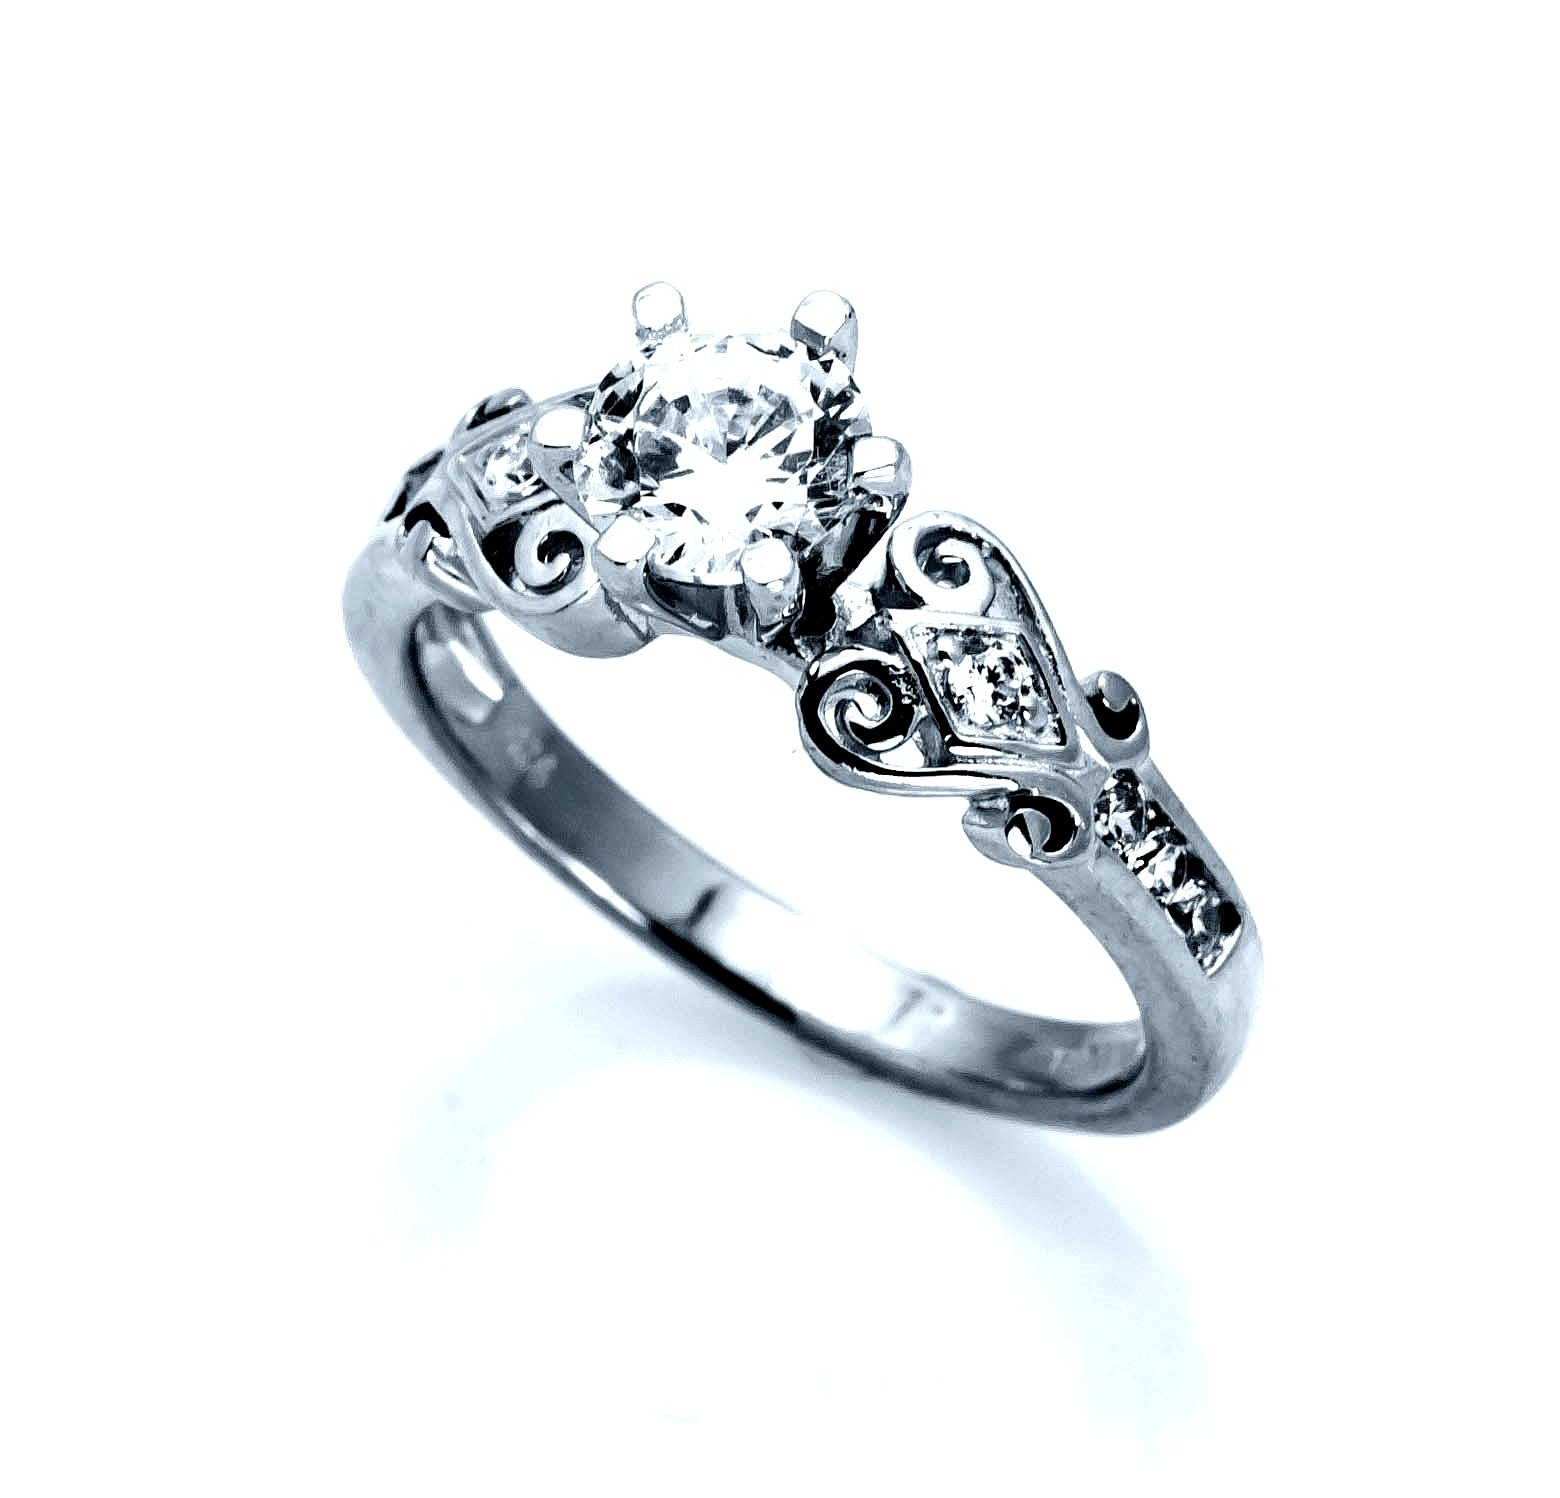 Antique Vintage Design Diamond Engagement Ring, Unique Solitaire .75 Carat GIA Certified Diamond Center Stone & .26 Carat Diamonds, Anniversary Ring - WDY11359